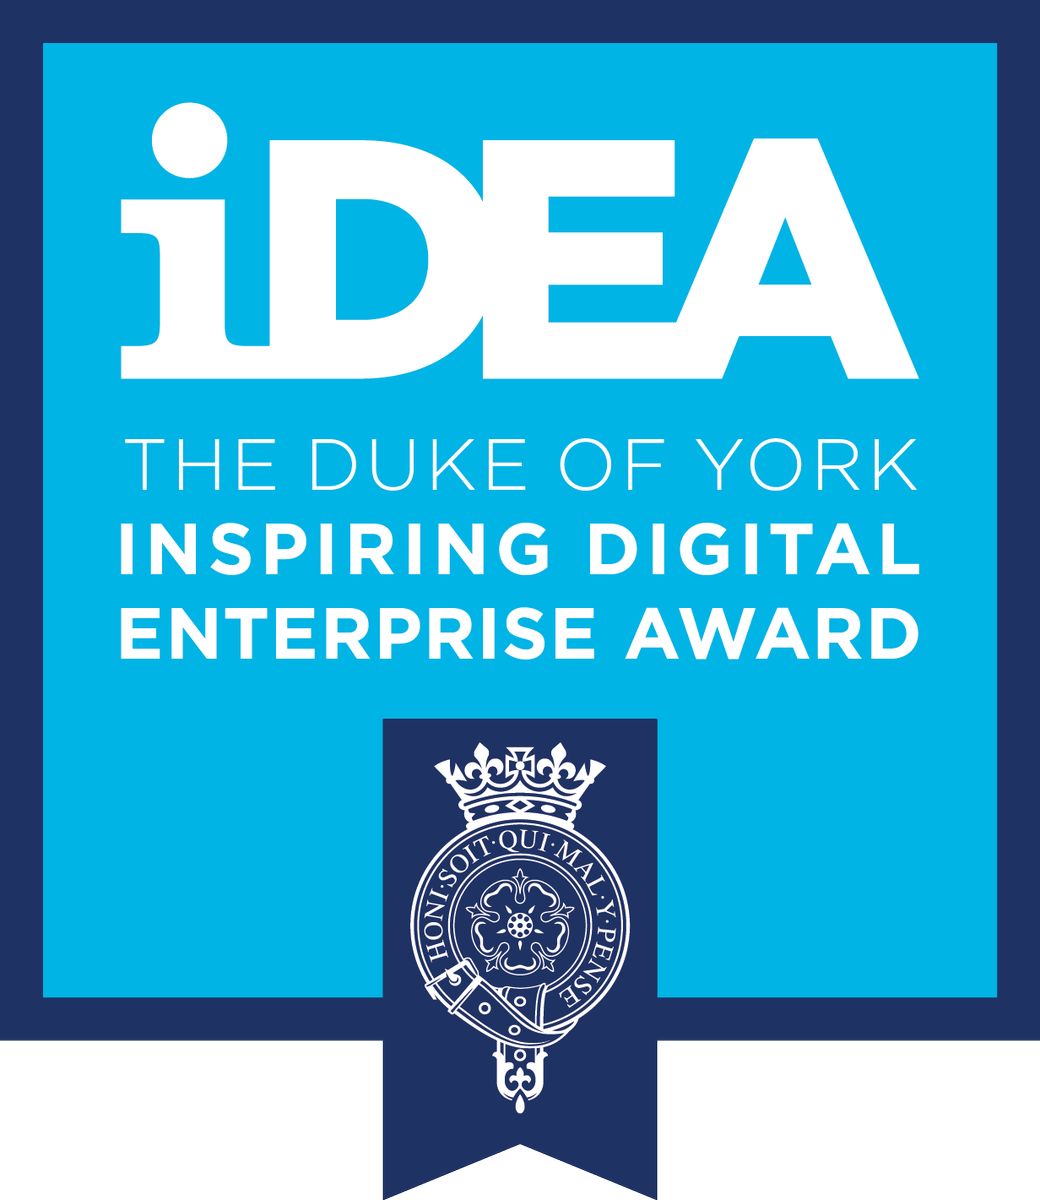 Each week, SmallBizSatUK will share insights into different modules of the @idea_award programme over the campaigns digital channels. Look out for exciting opportunities and opportunities to learn in bite sized packages #smallidea @TheDukeOfYork smallbusinesssaturdayuk.com/iDEA